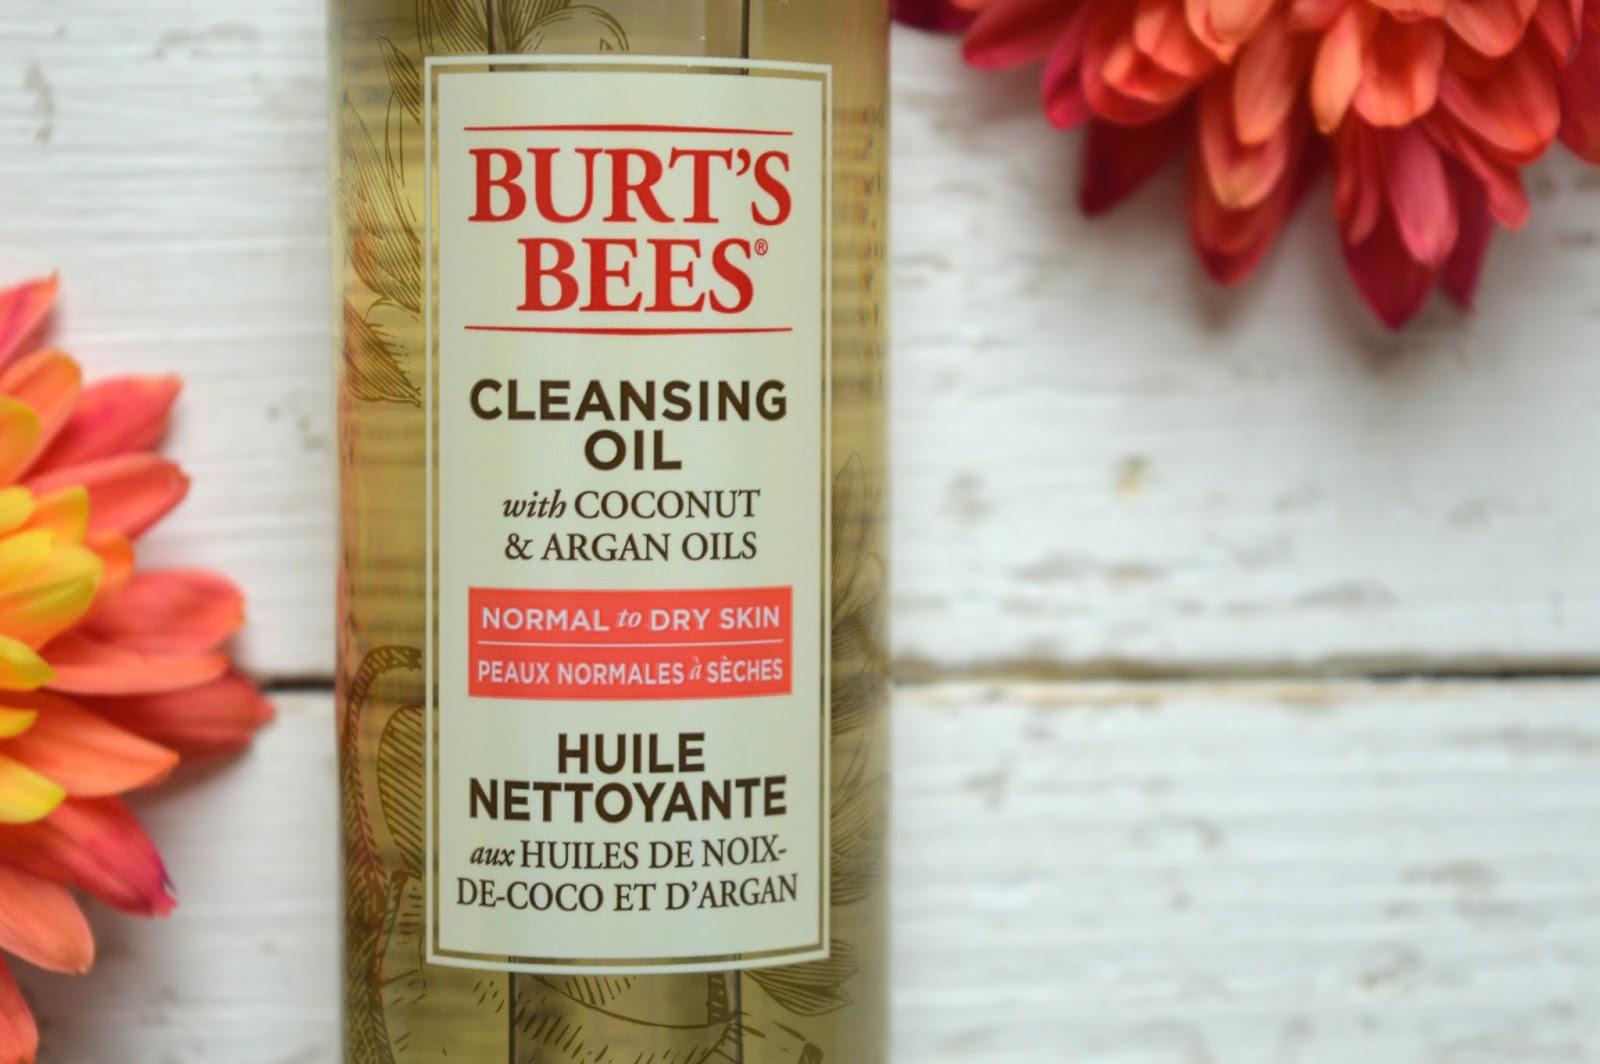 Burt's Bees Cleansing Oil Review, beauty bloggers, UK beauty blog, Hampshire bloggers, Dalry Rose Blog